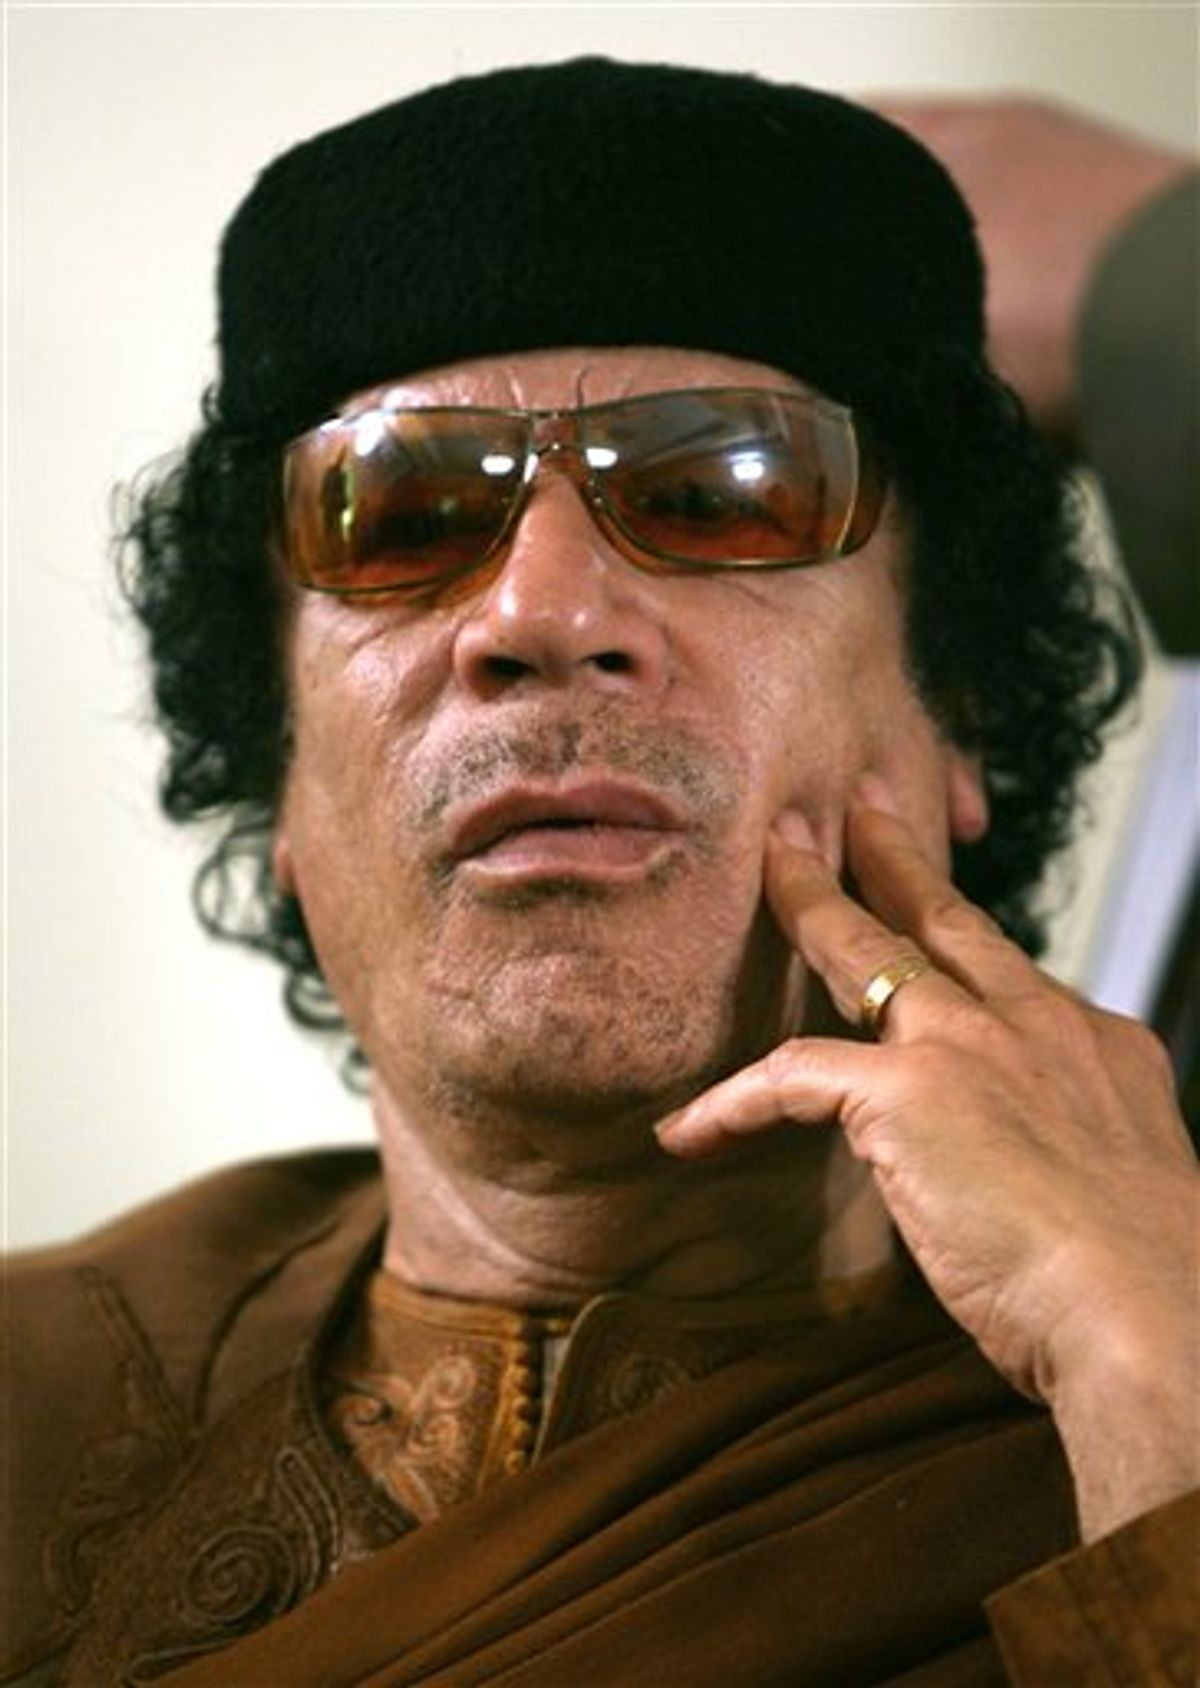 FILE.- This Friday, March 2, 2007 file photo shows Libya's Moammar Gadhafi  in Sabha, Libya Friday, March 2, 2007. The International Criminal Court issued arrest warrants Monday June 27, 2011, for Libyan leader Moammar Gadhafi, his son and his intelligence chief for crimes against humanity in the early days of their struggle to cling to power. (AP Photo/Nasser Nasser, File) (AP)